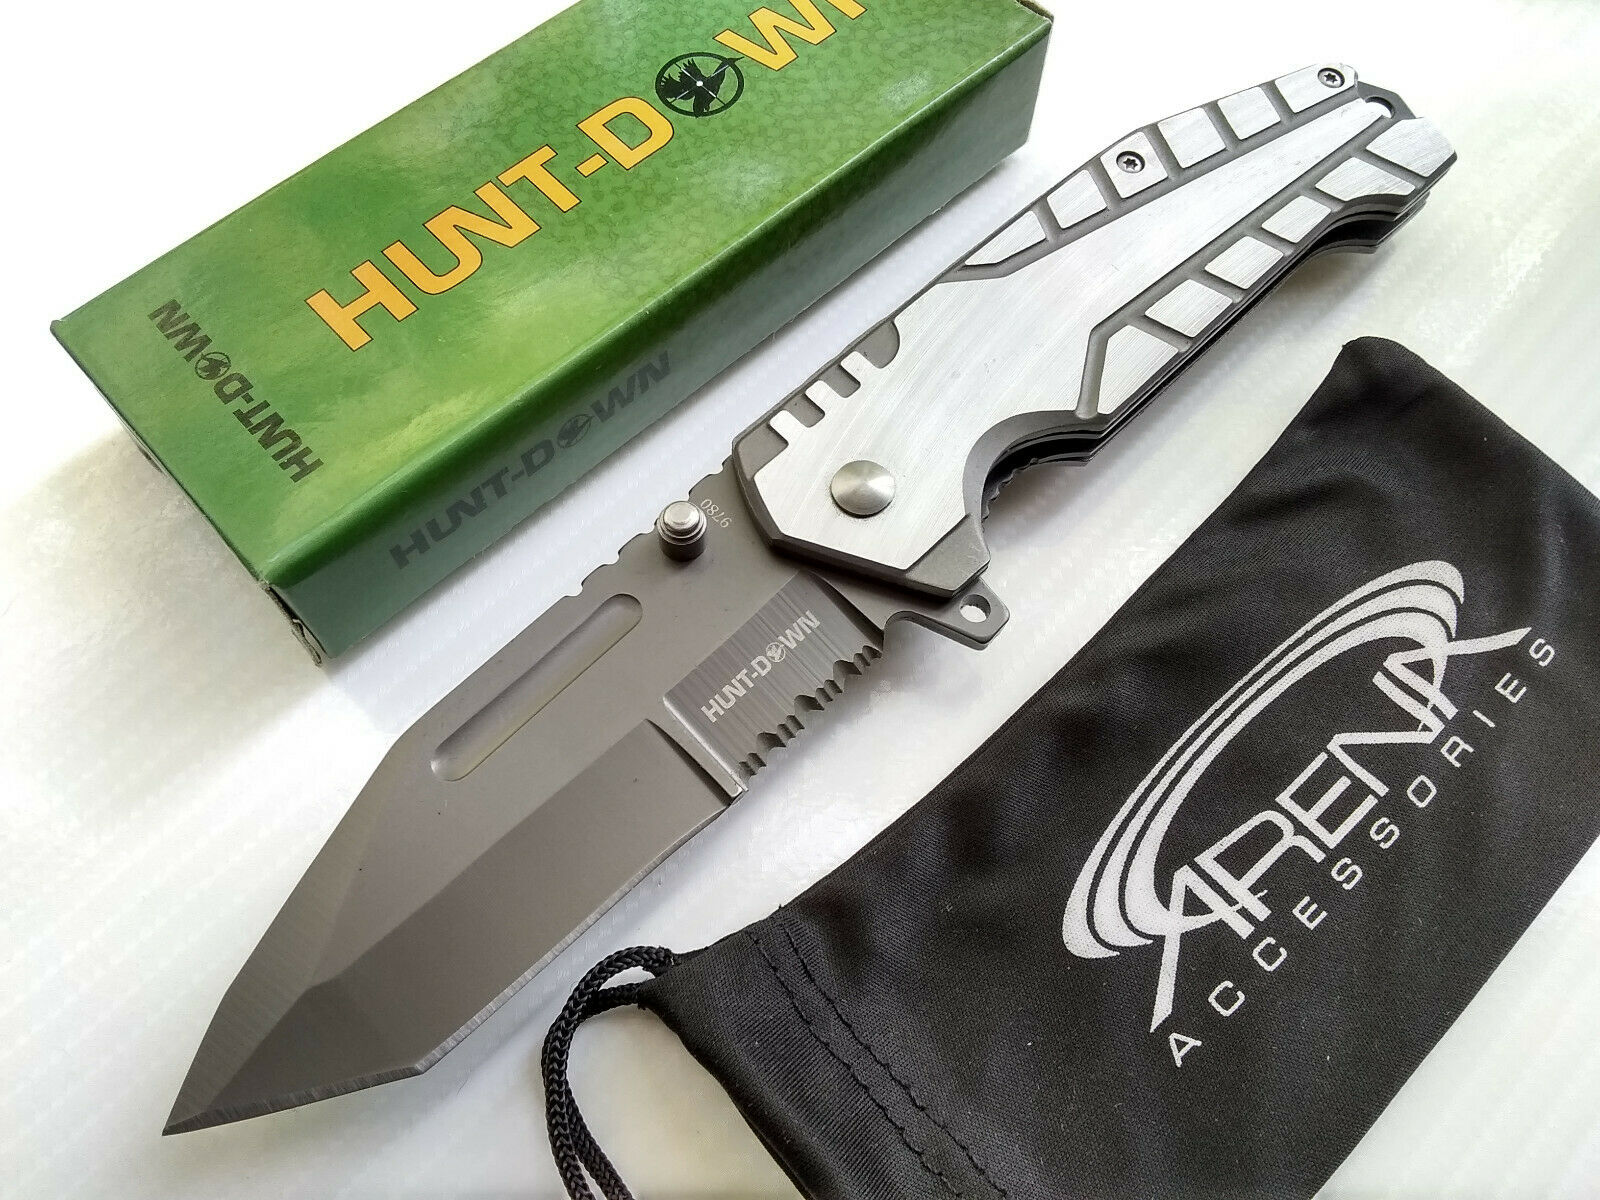 Hunt-Down Partially Serrated Gray Tanto Ball Bearing Pivot Manual Open Pocket Knife EDC